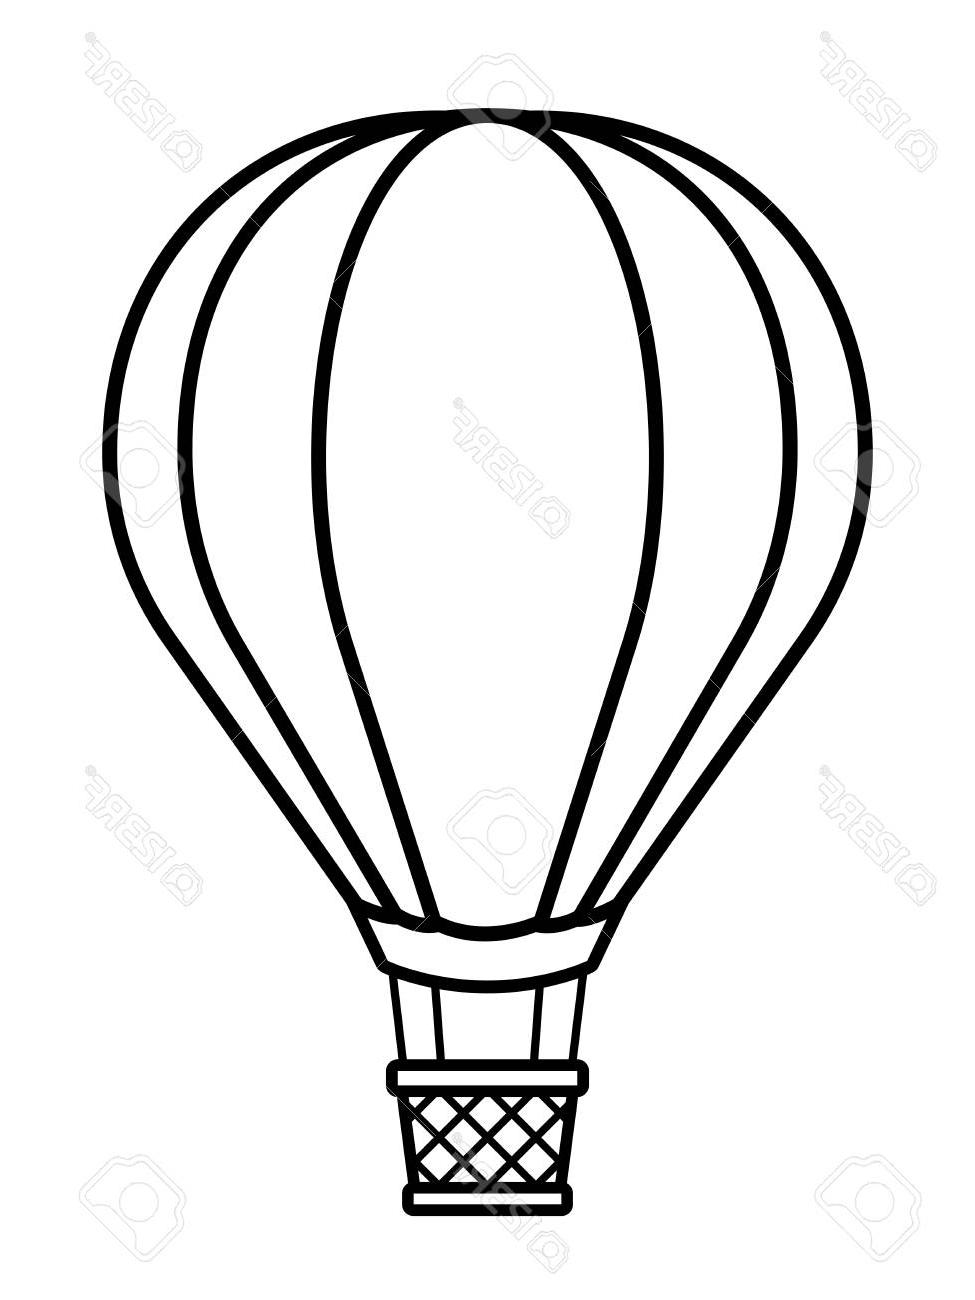 Aesthetic hot air balloon clipart graphic free Unique Hot Air Balloon Silhouette Vector Image » Free Vector Art ... graphic free